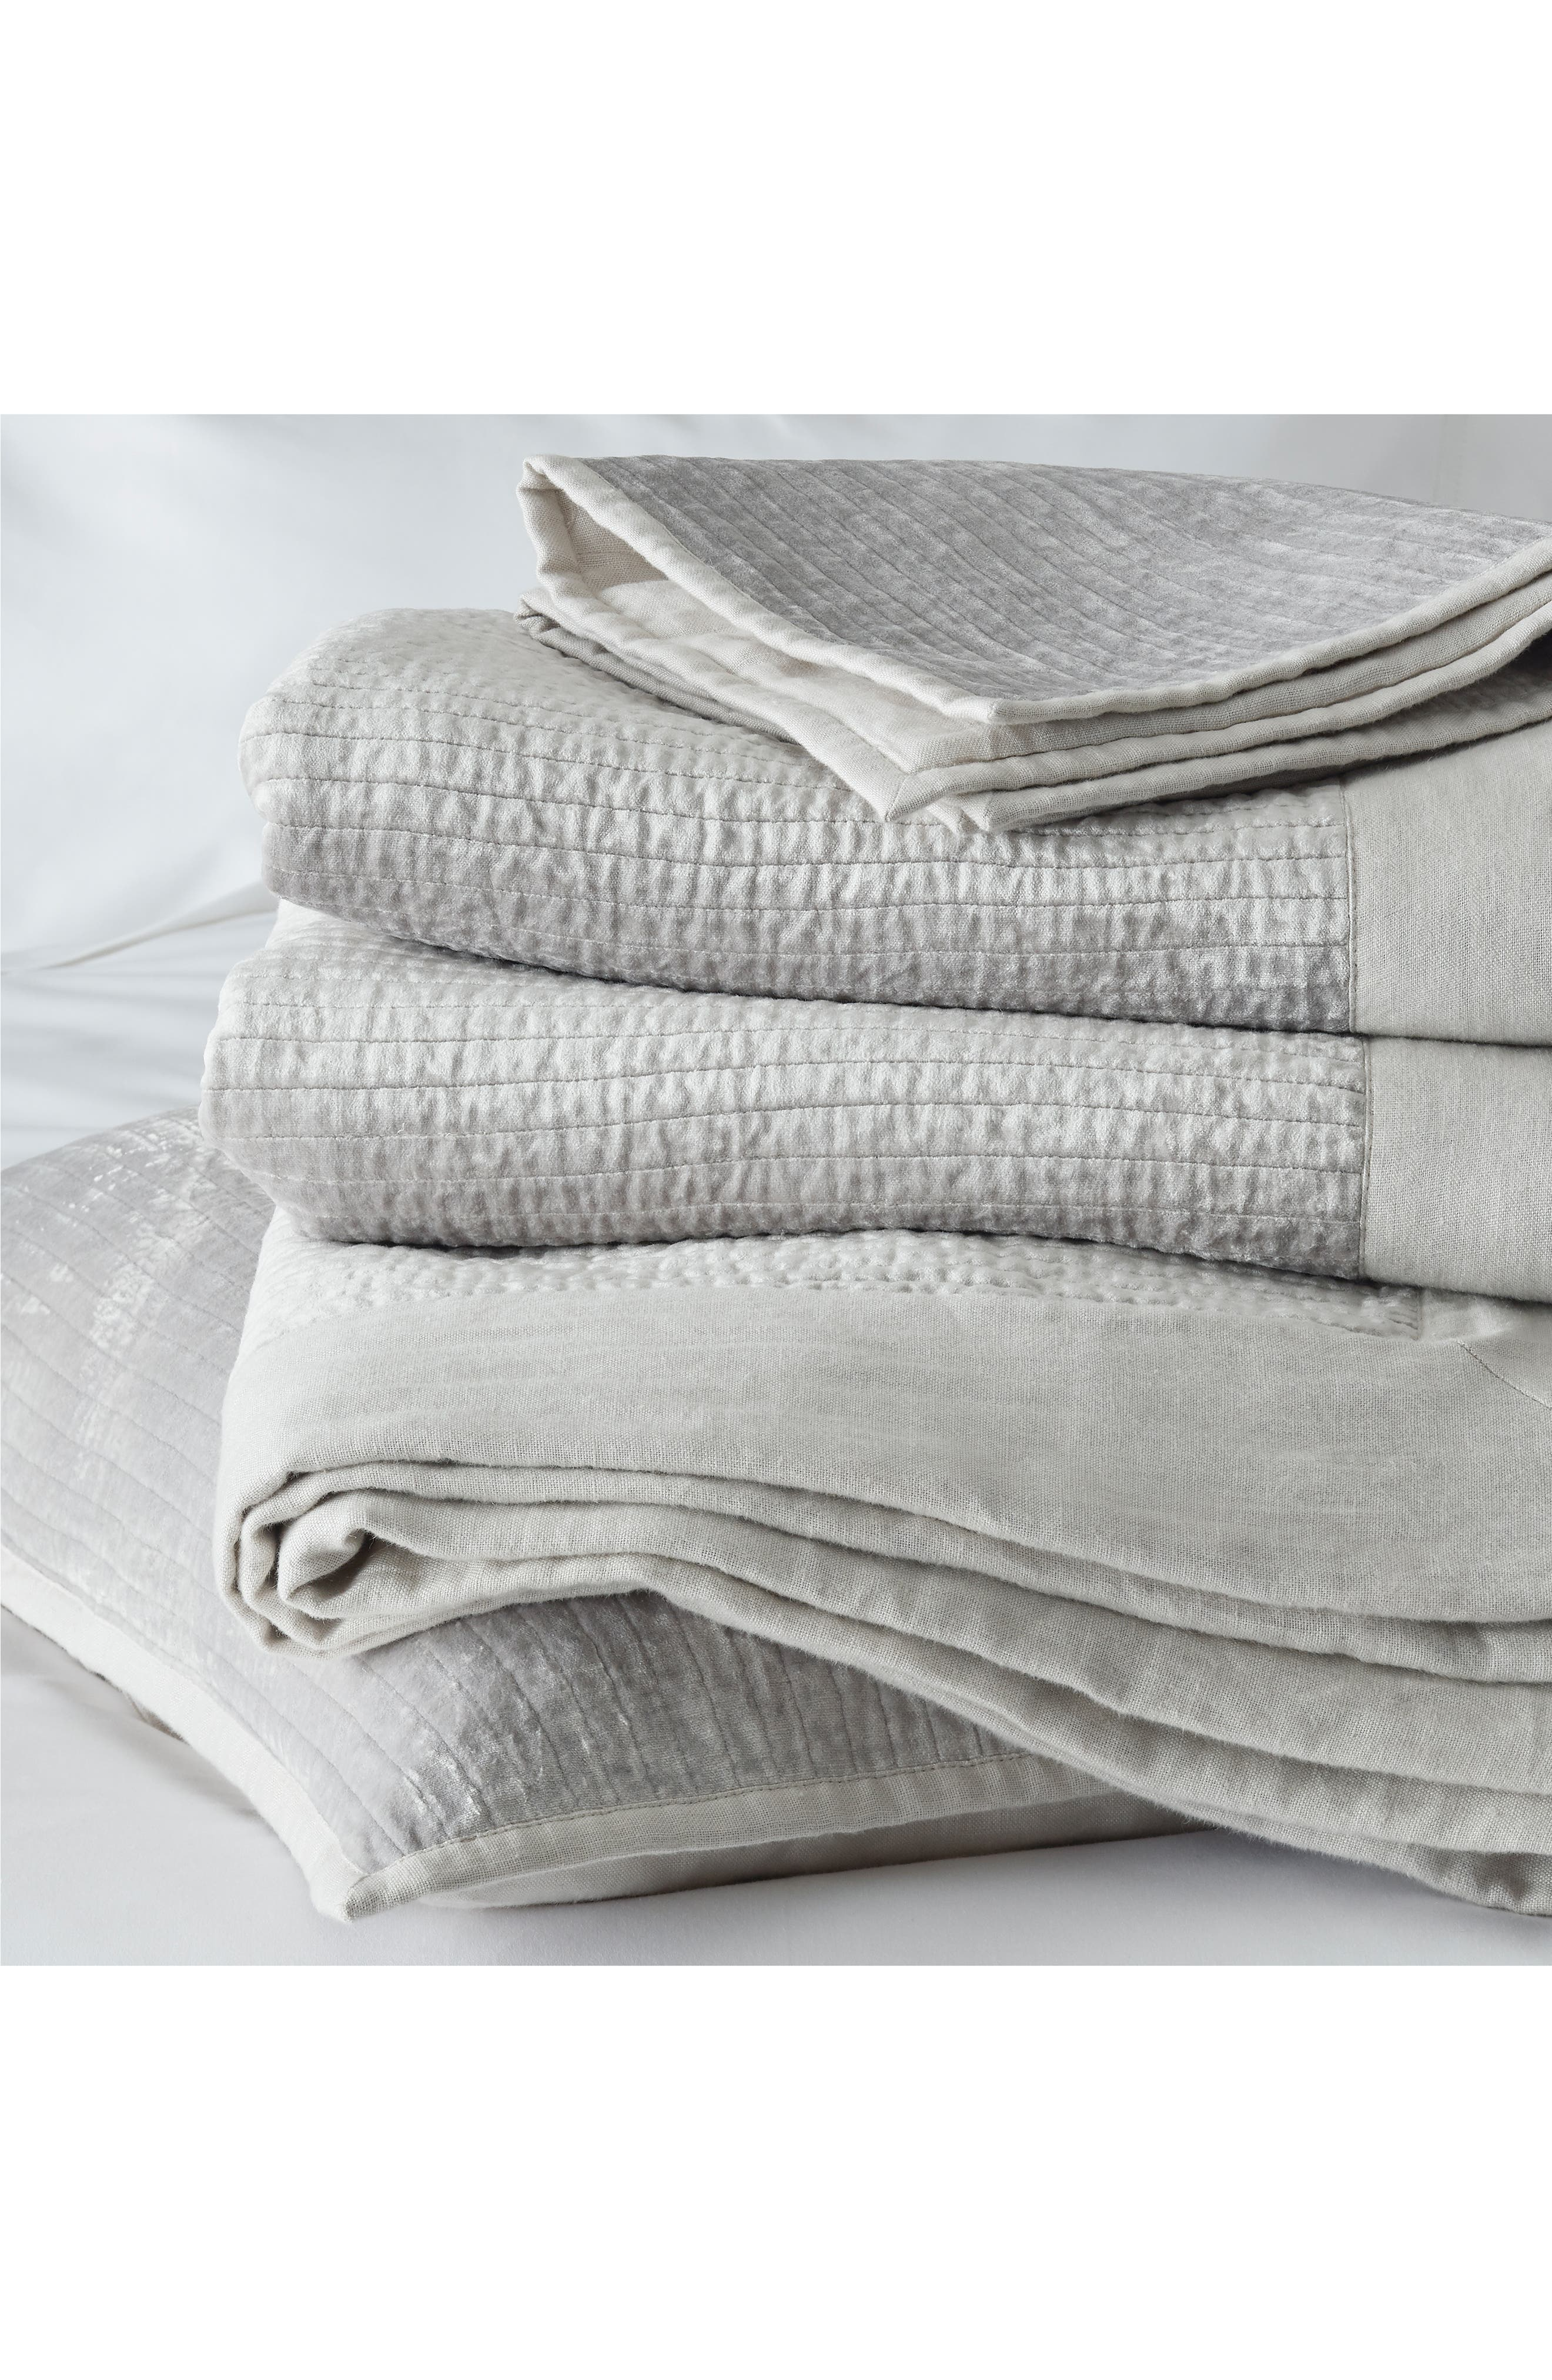 THE WHITE COMPANY,                             Vienne Quilt,                             Alternate thumbnail 2, color,                             SILVER